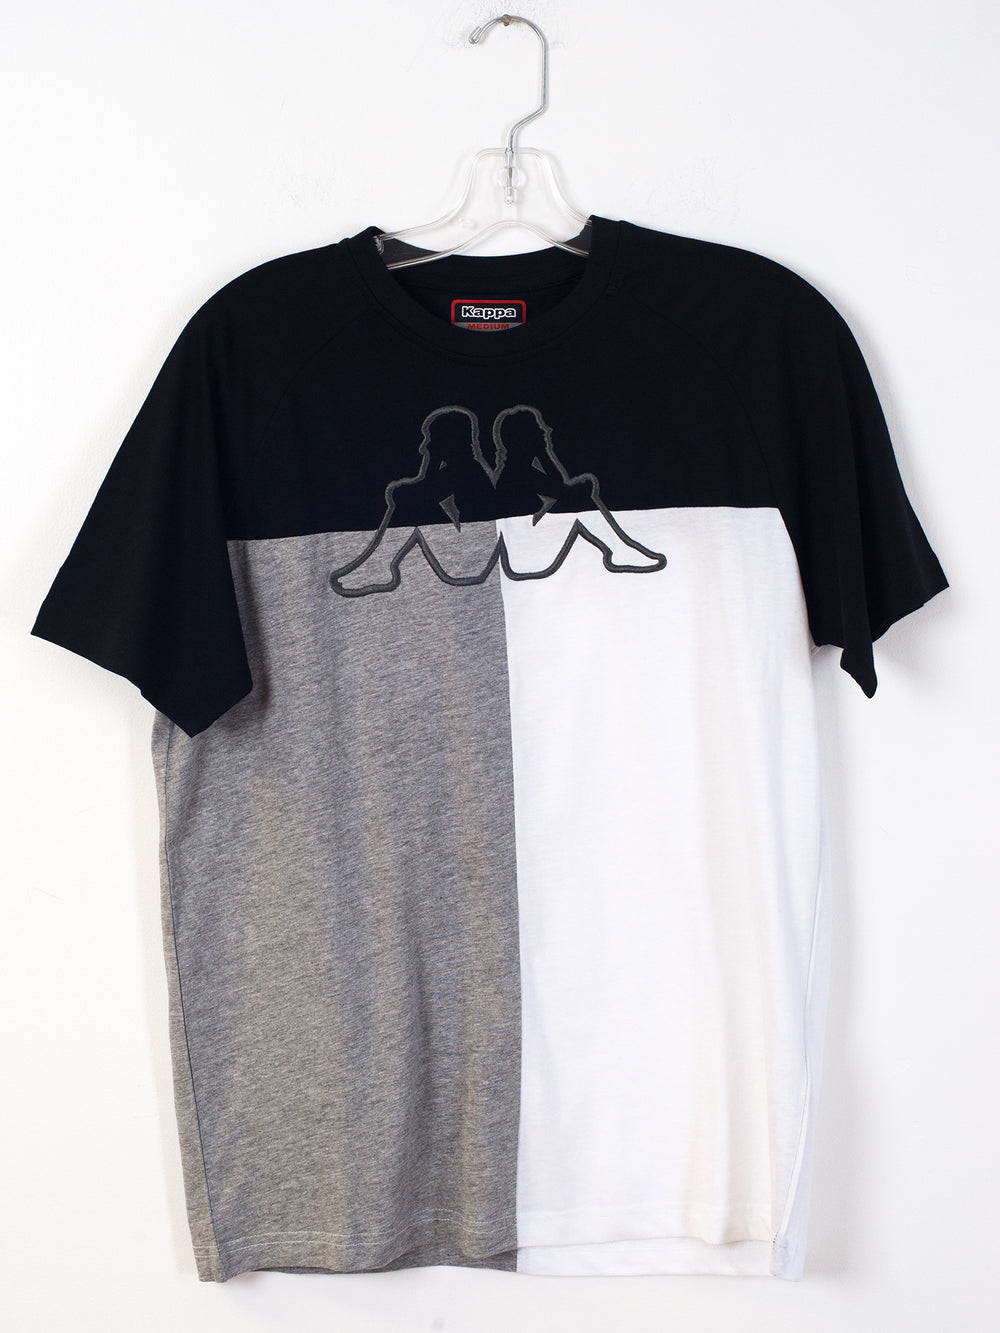 MENS BACUSO LOGO SHORT SLEEVE T-SHIRT- BLACK/GREY